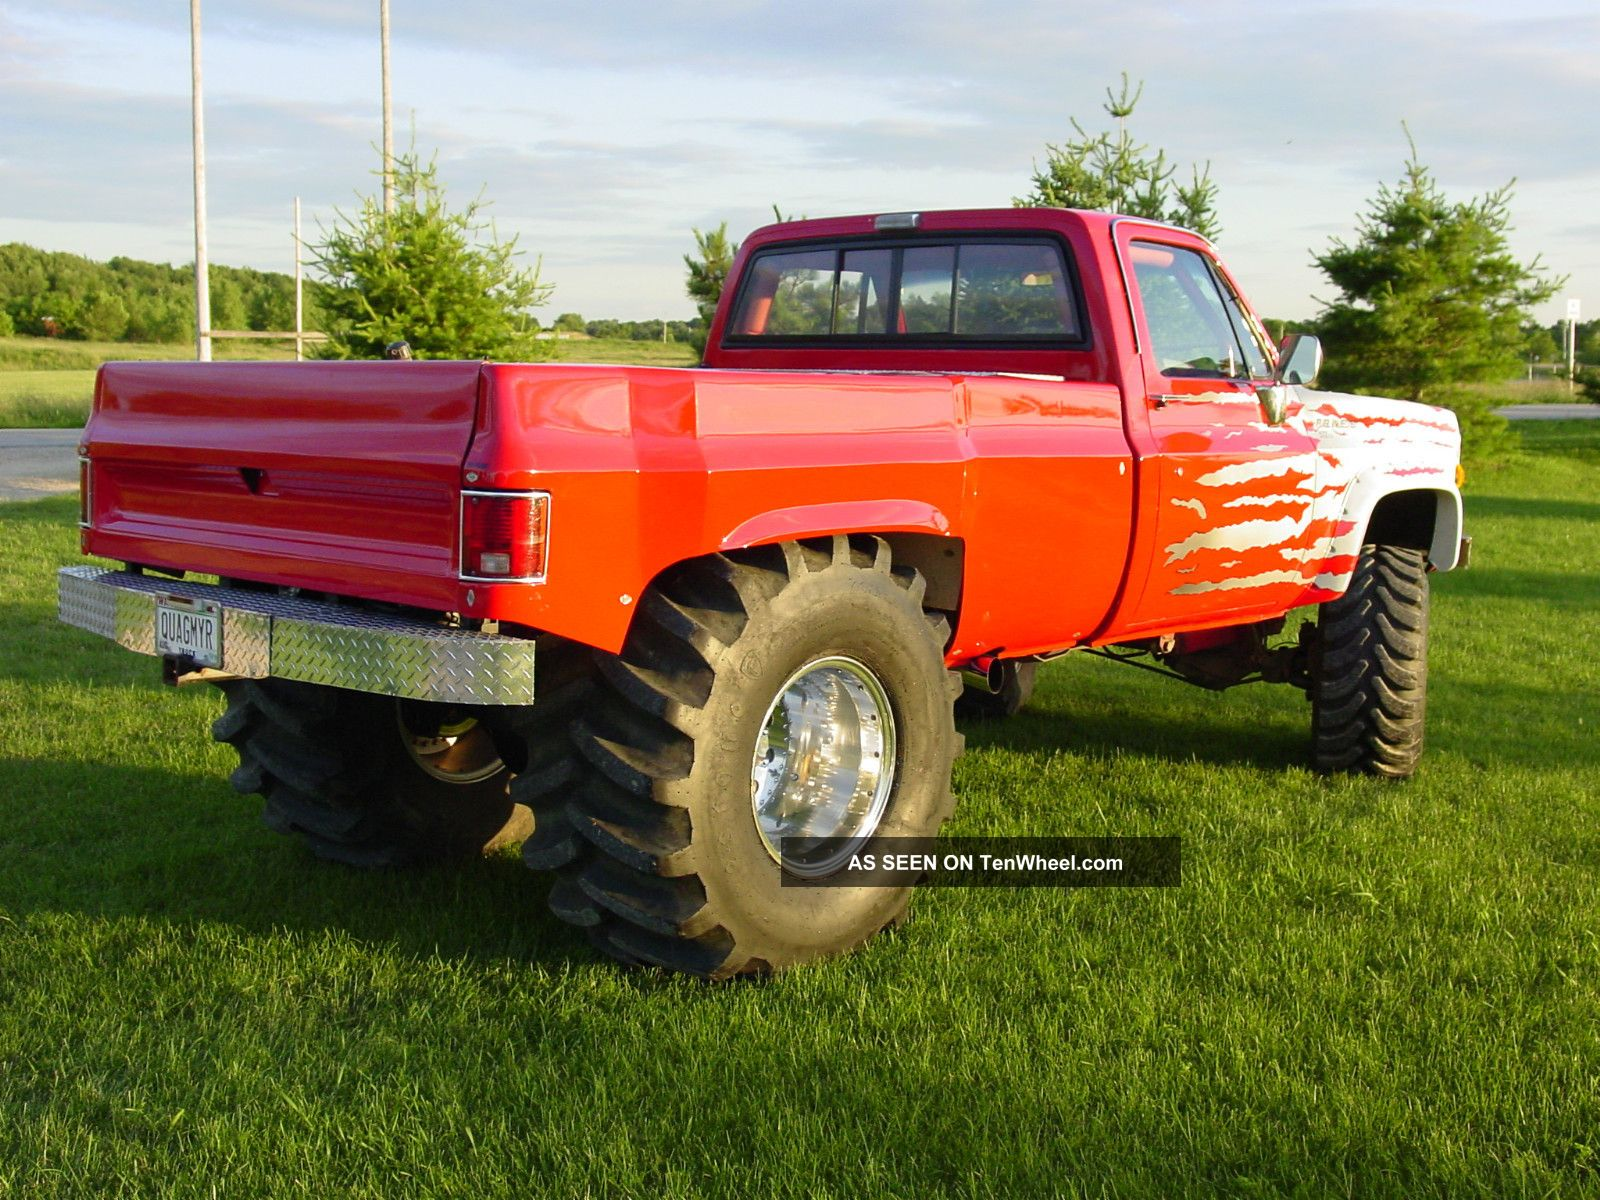 1979 Chevy Mud Truck